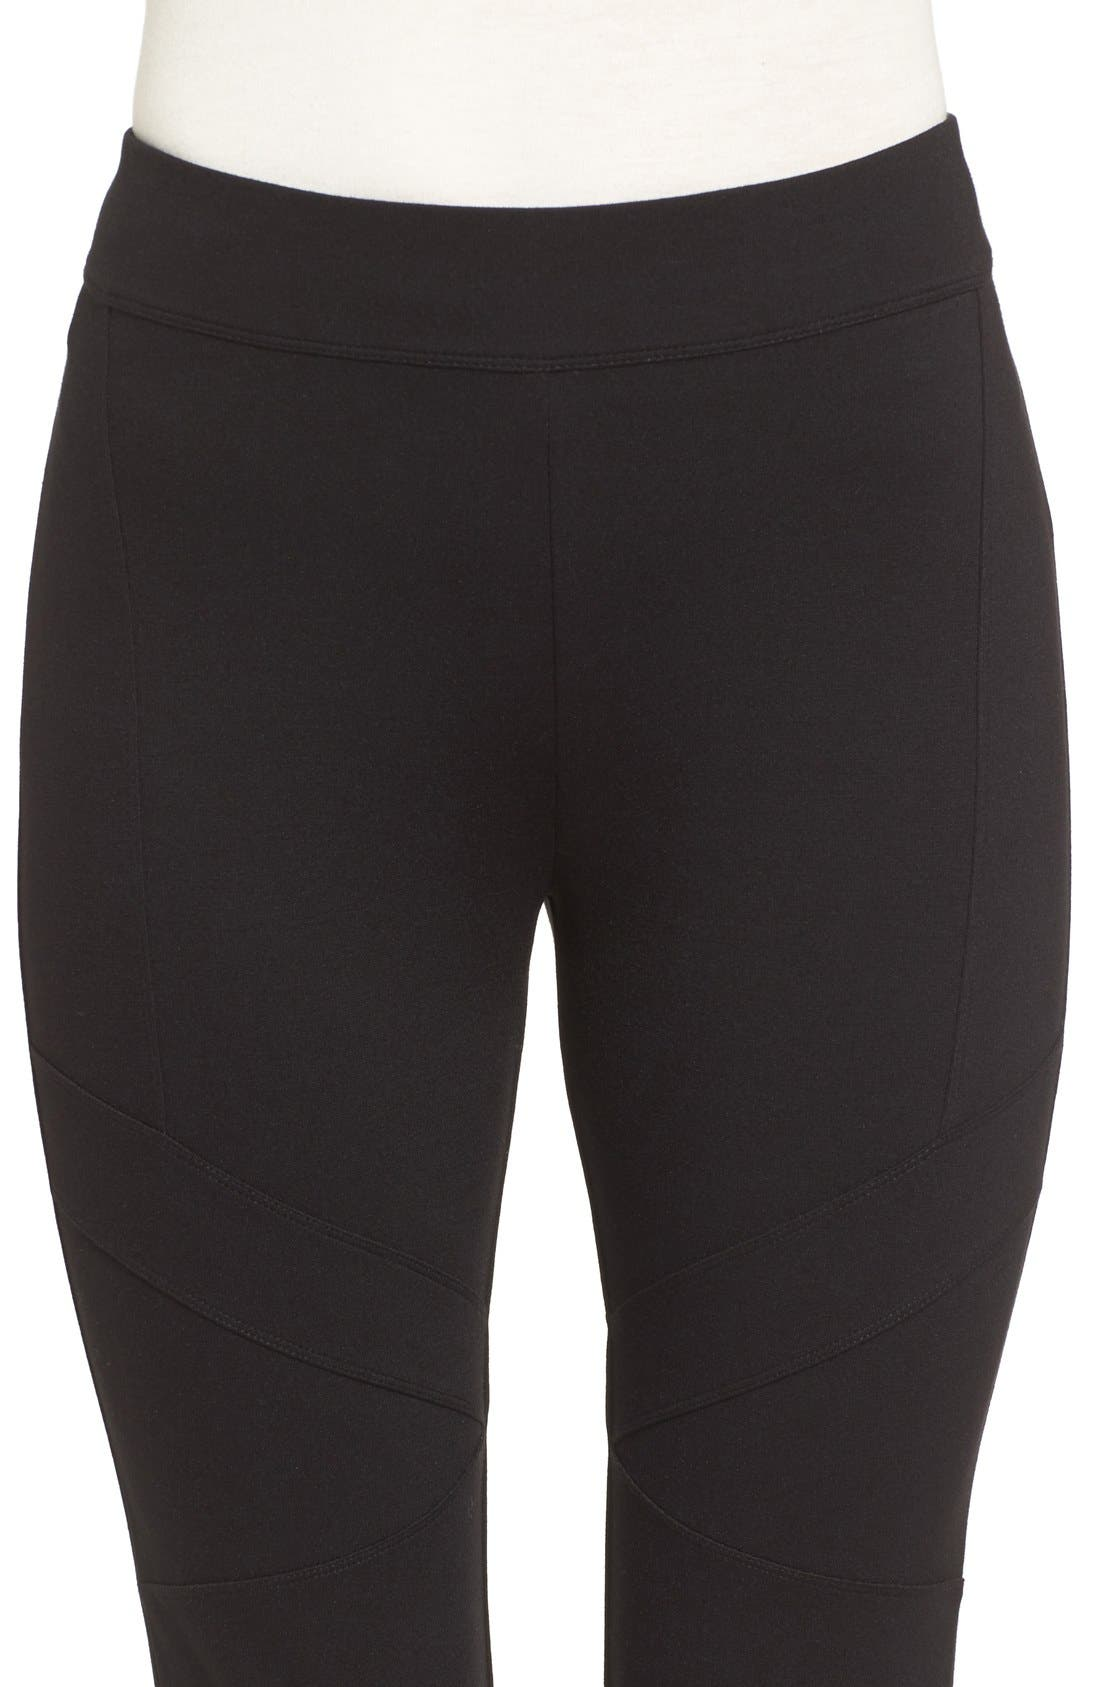 Alternate Image 4  - Two by Vince Camuto Ponte Knit Moto Leggings